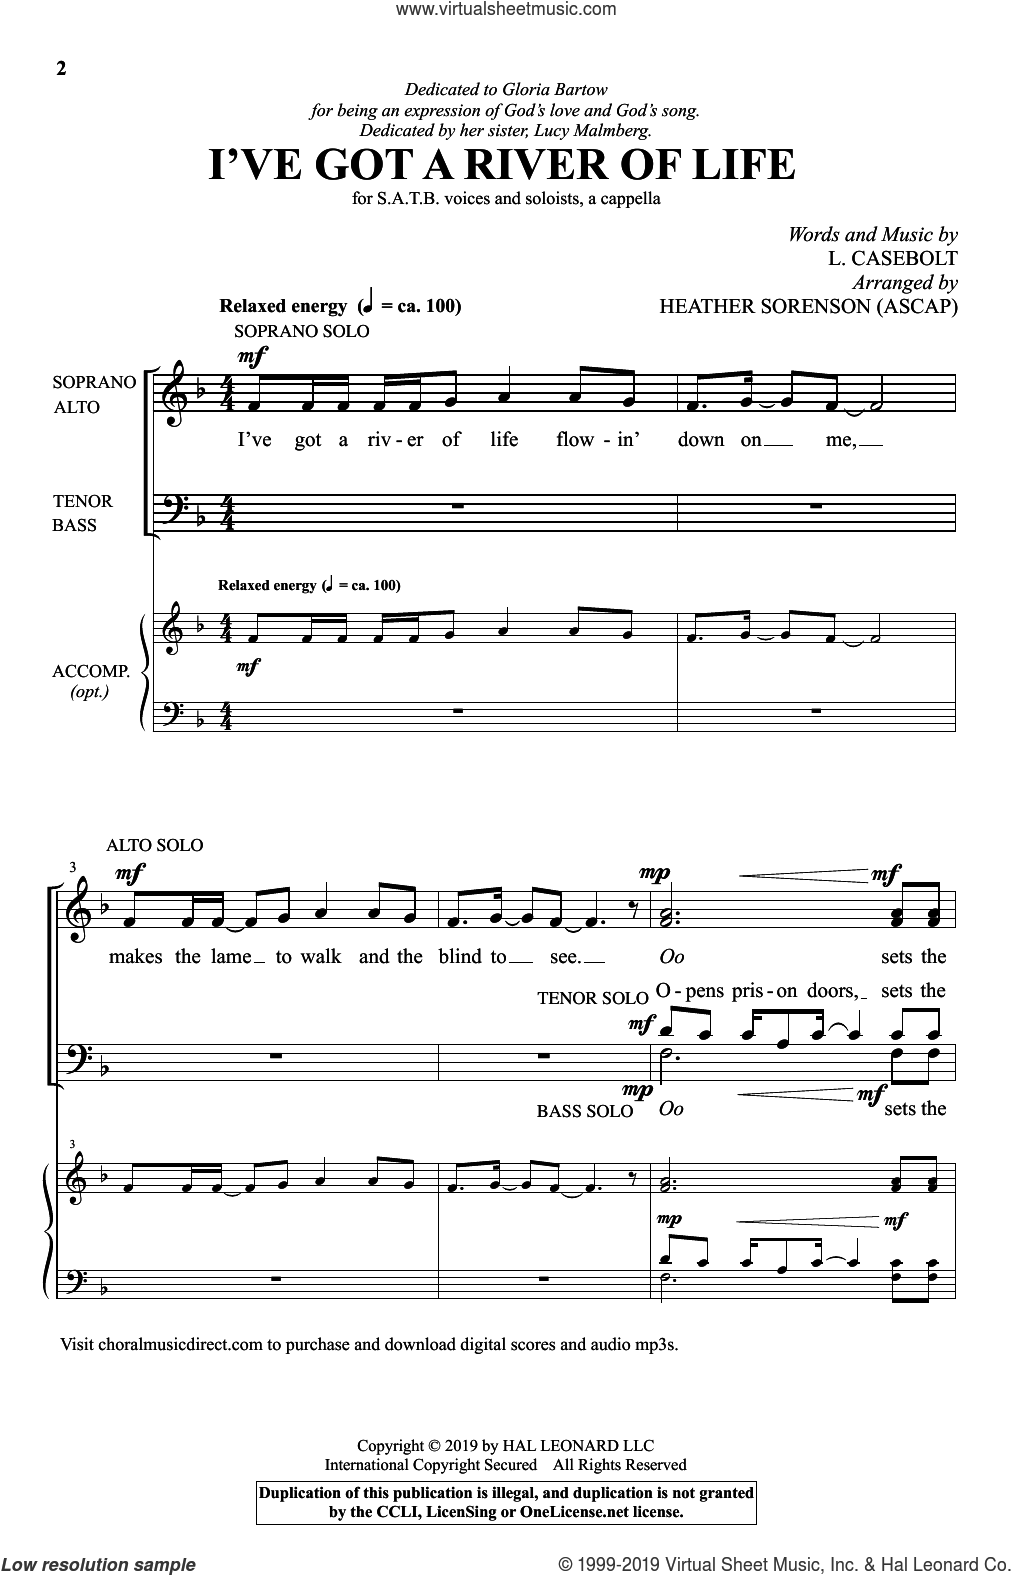 I've Got A River Of Life (arr. Heather Sorenson) sheet music for choir (SATB: soprano, alto, tenor, bass) by L. Casebolt and Heather Sorenson, intermediate skill level